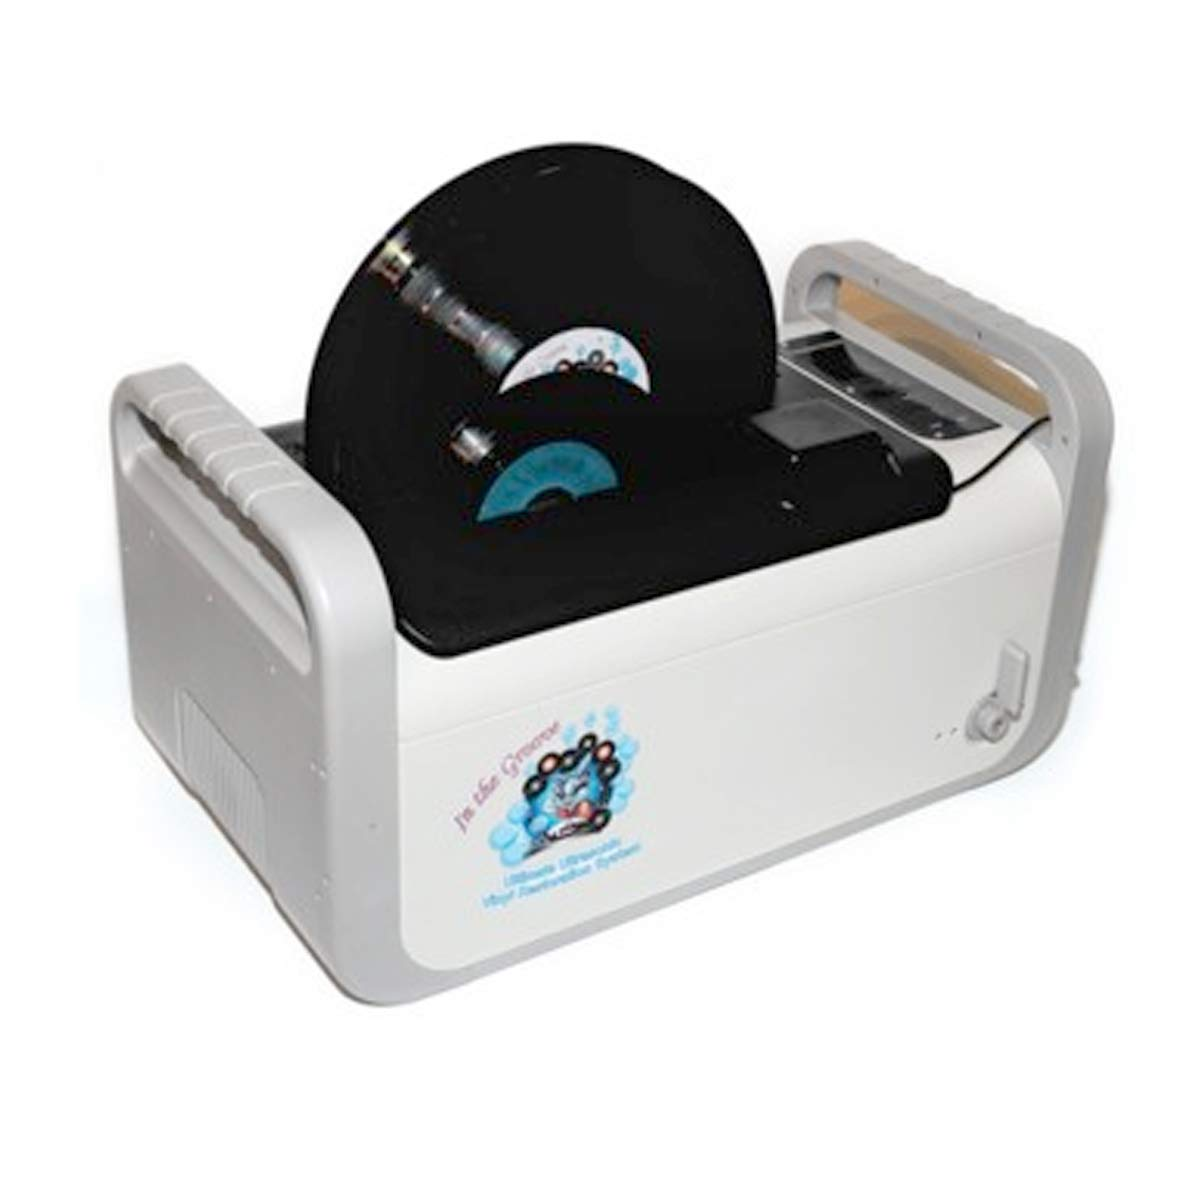 FatWyre KA-RC-1 - Kirmuss Audio's Ultrasonic Restoration System, Vinyl Records LPs Albums Disc Cleaner